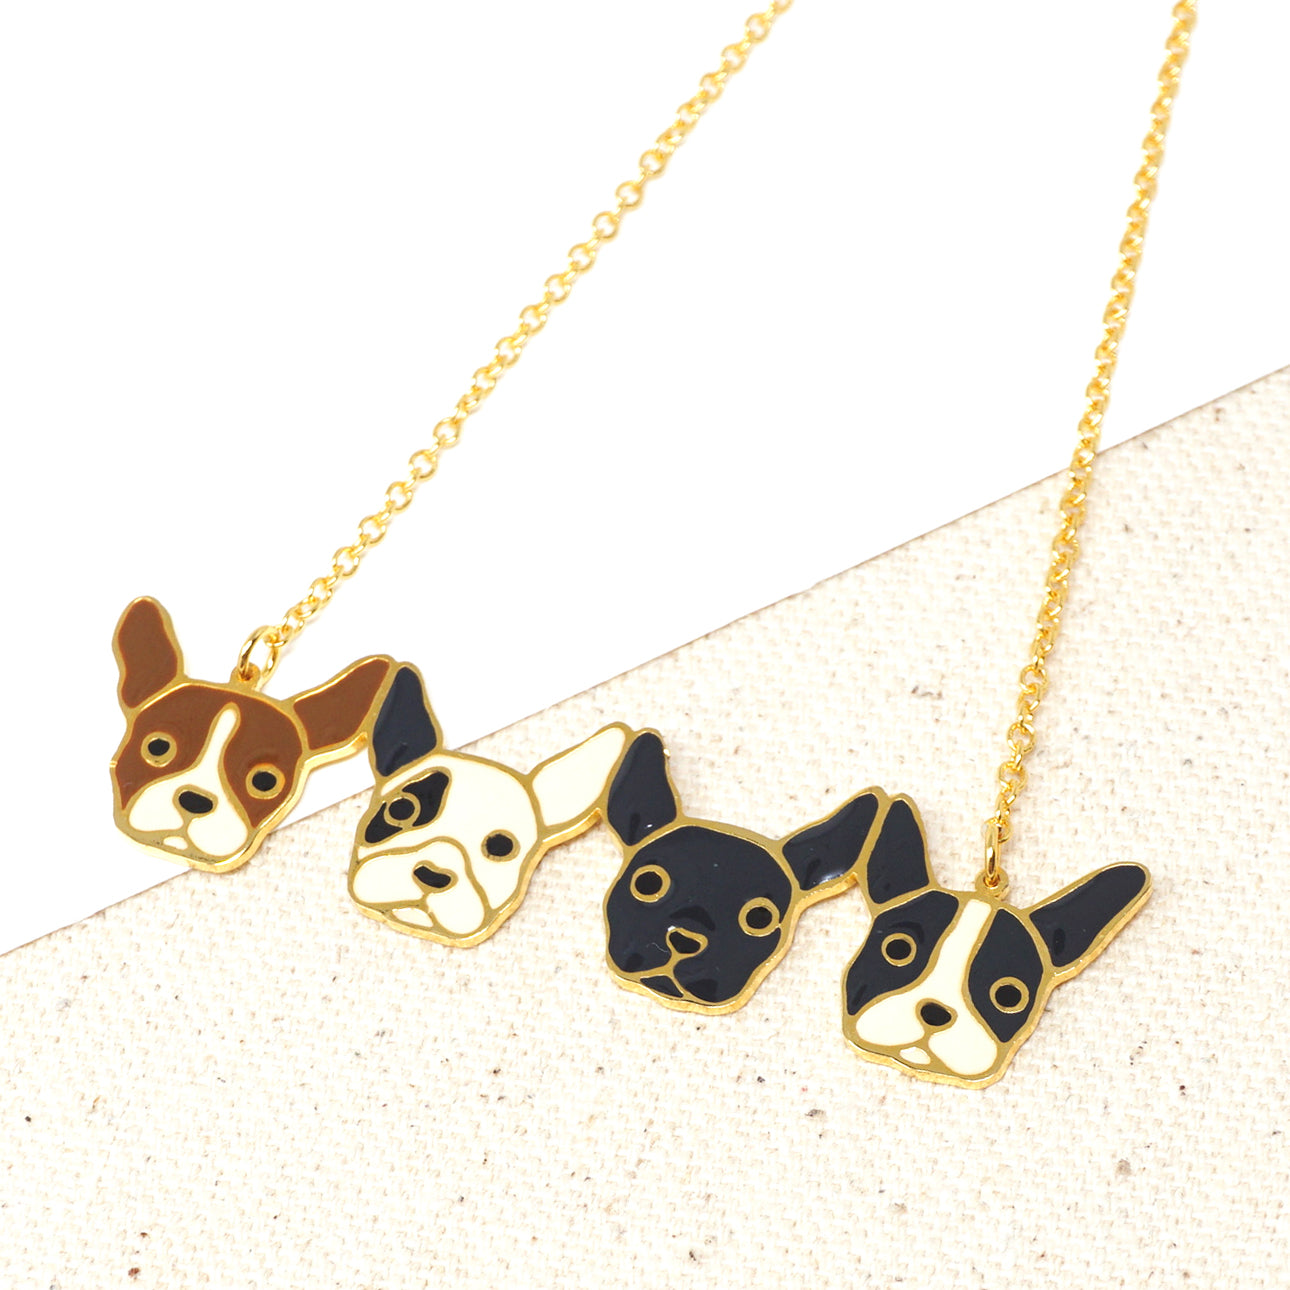 Handcrafted Four French Bulldogs Friendship Enamel Statement Necklace